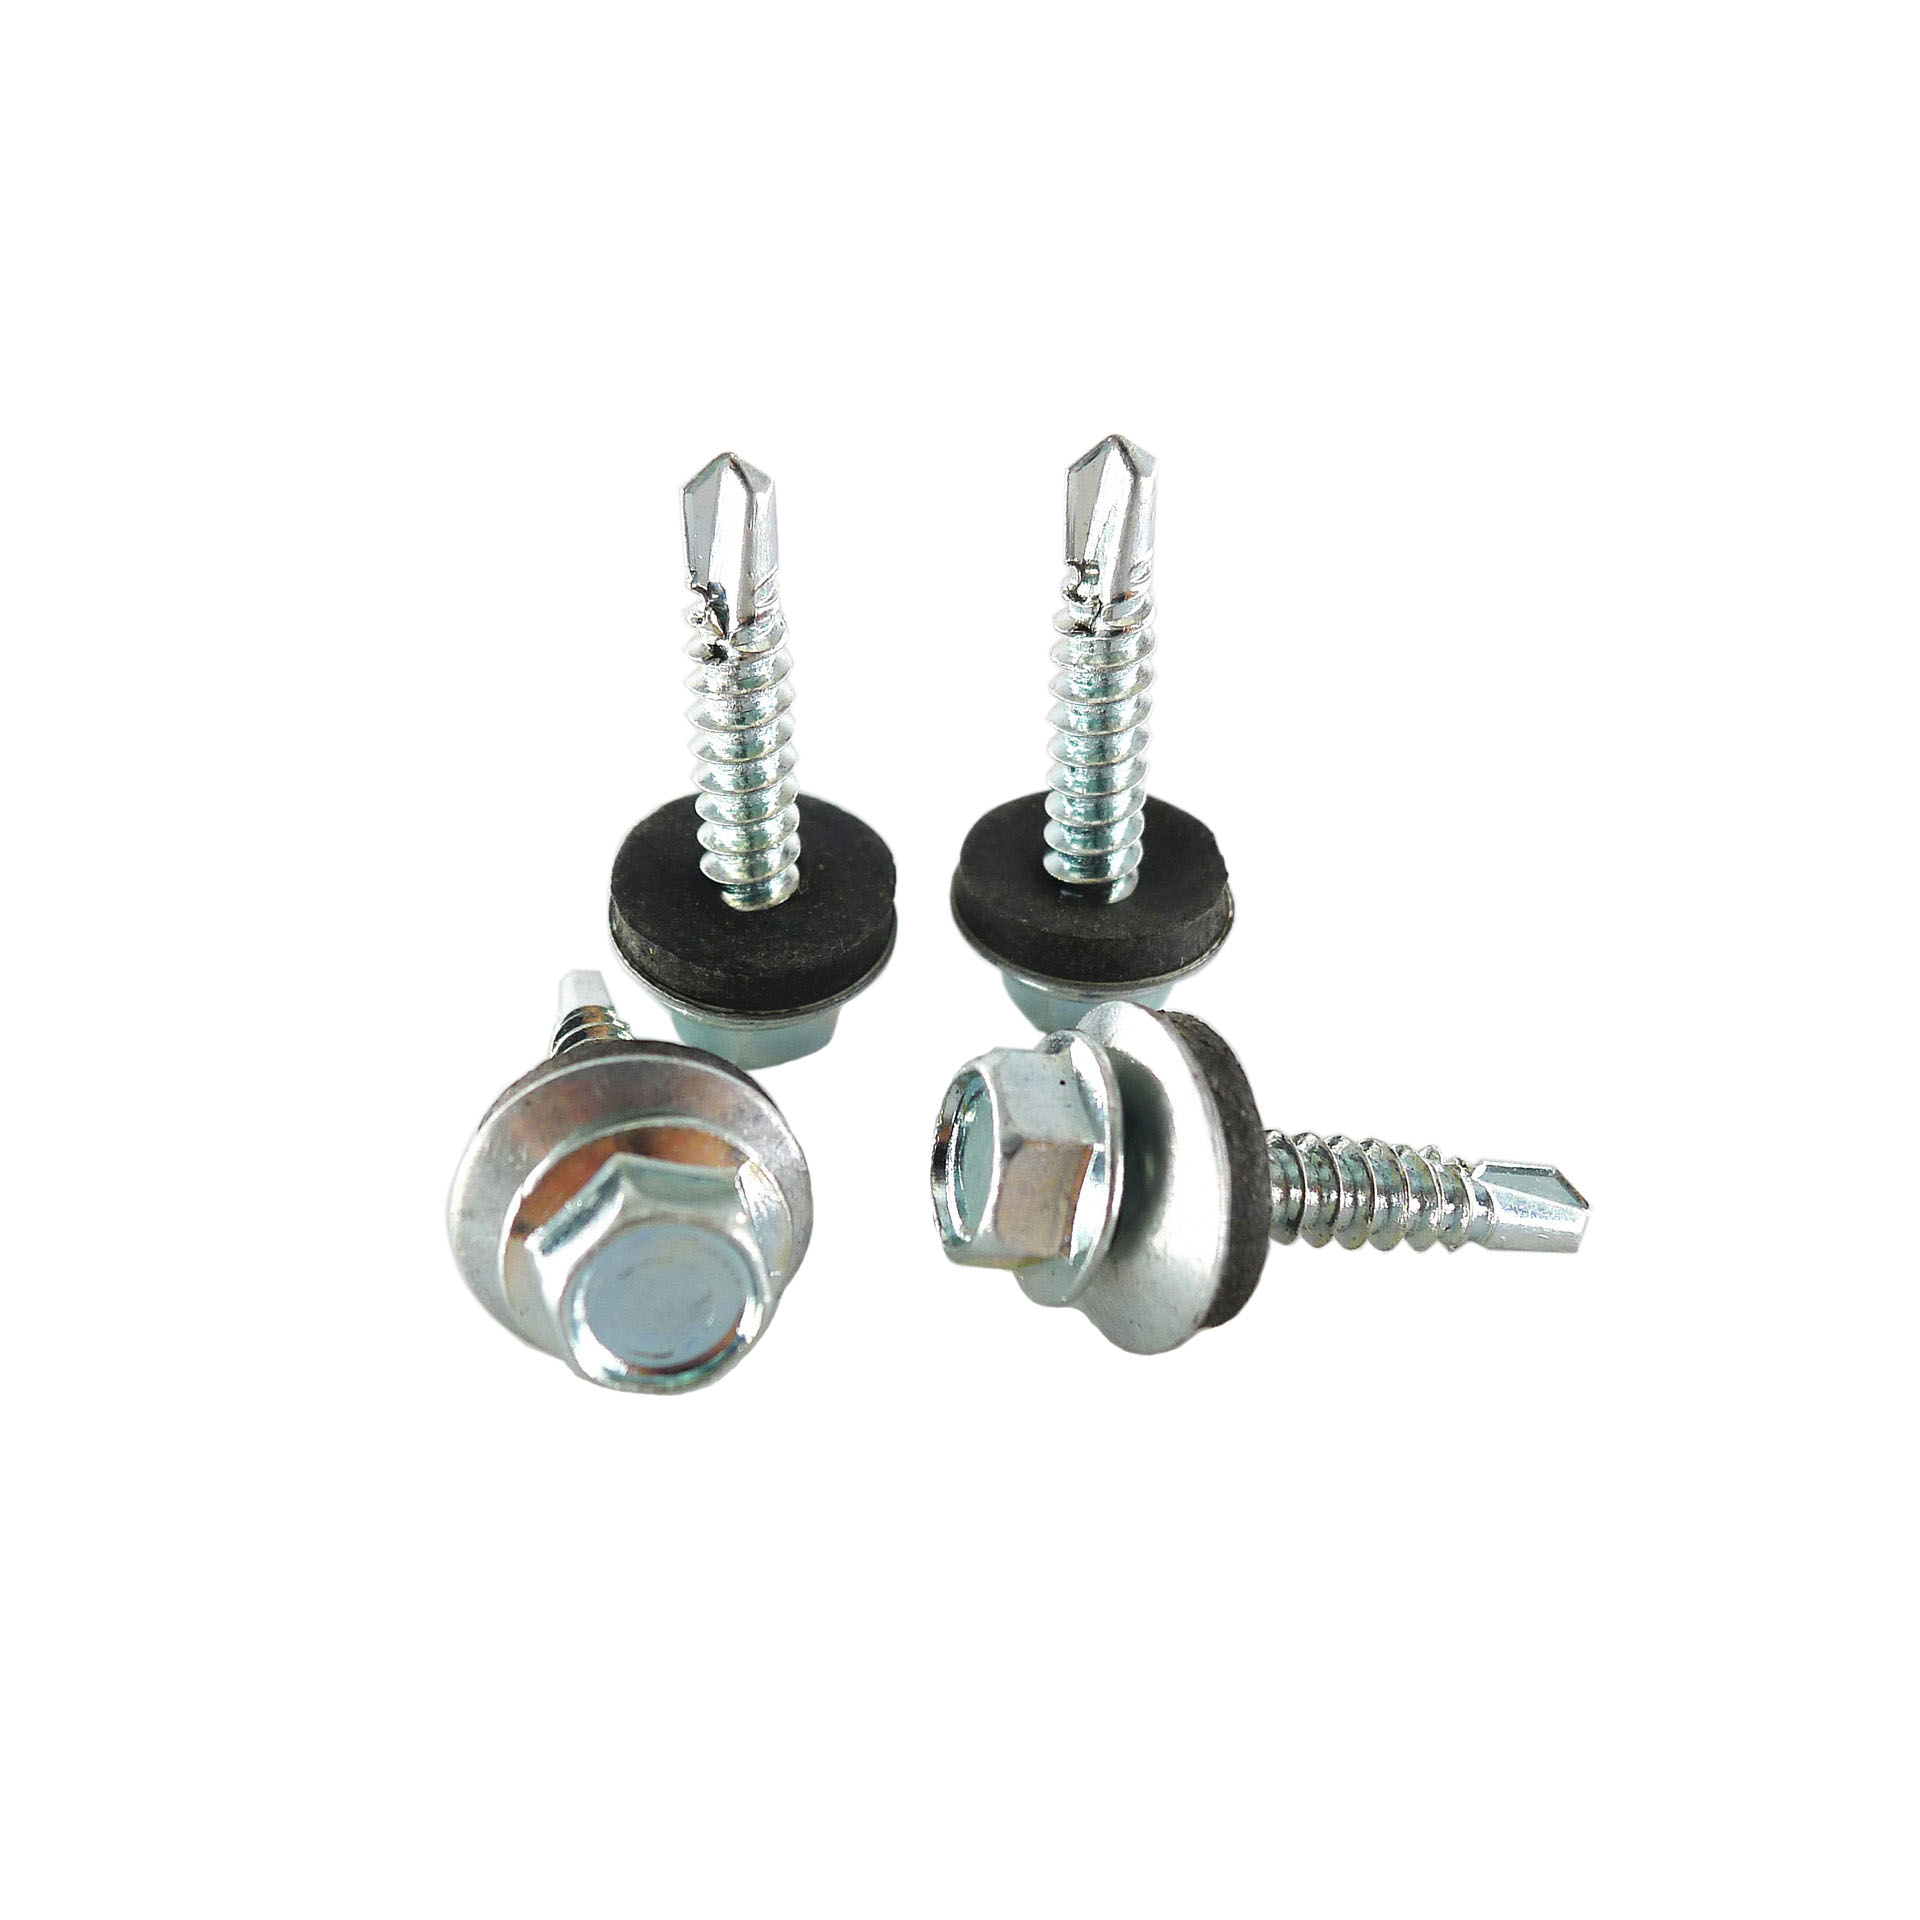 china products manufacturers Stainless <strong>Steel</strong> EPDM Bonded Self Drilling Washer Head Hex Screw hex head self drilling screw